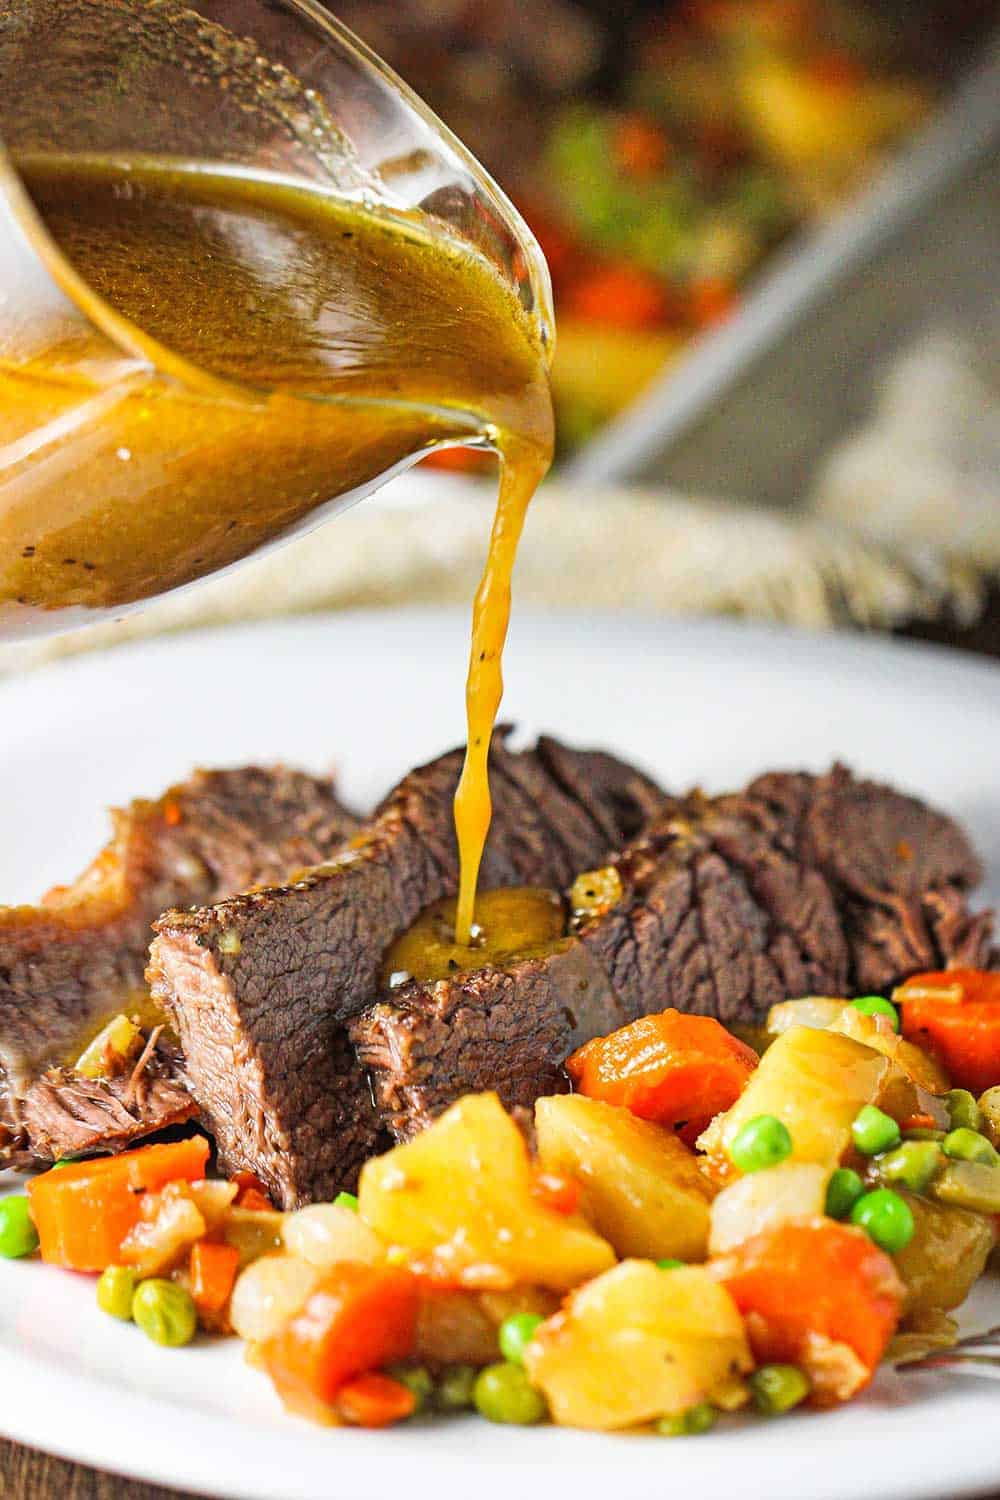 NEW: Slices of American pot roast and vegetables on a white plate